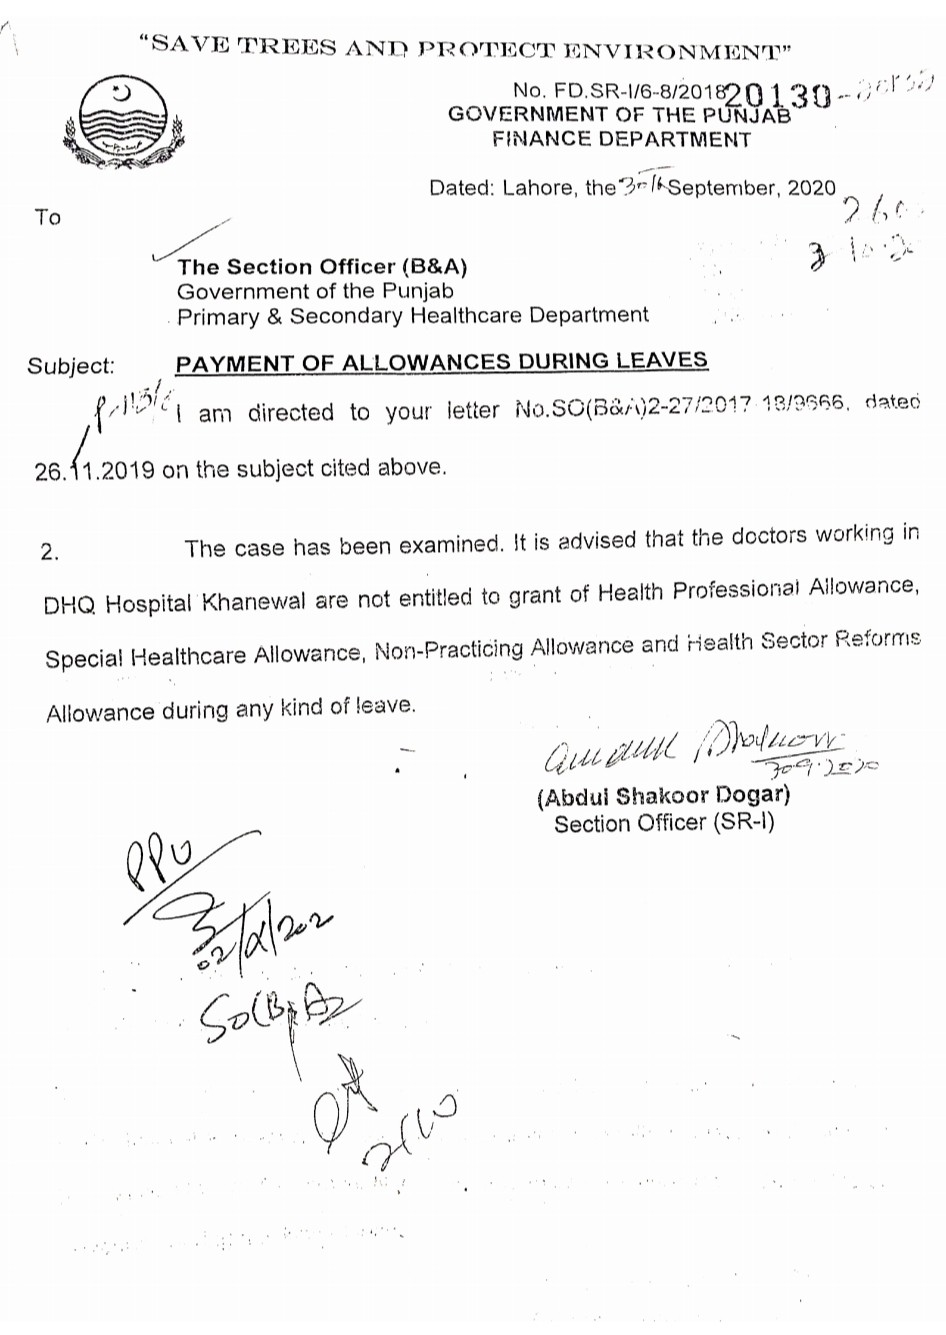 Clarification Payment of Allowances during Leaves Medical Staff